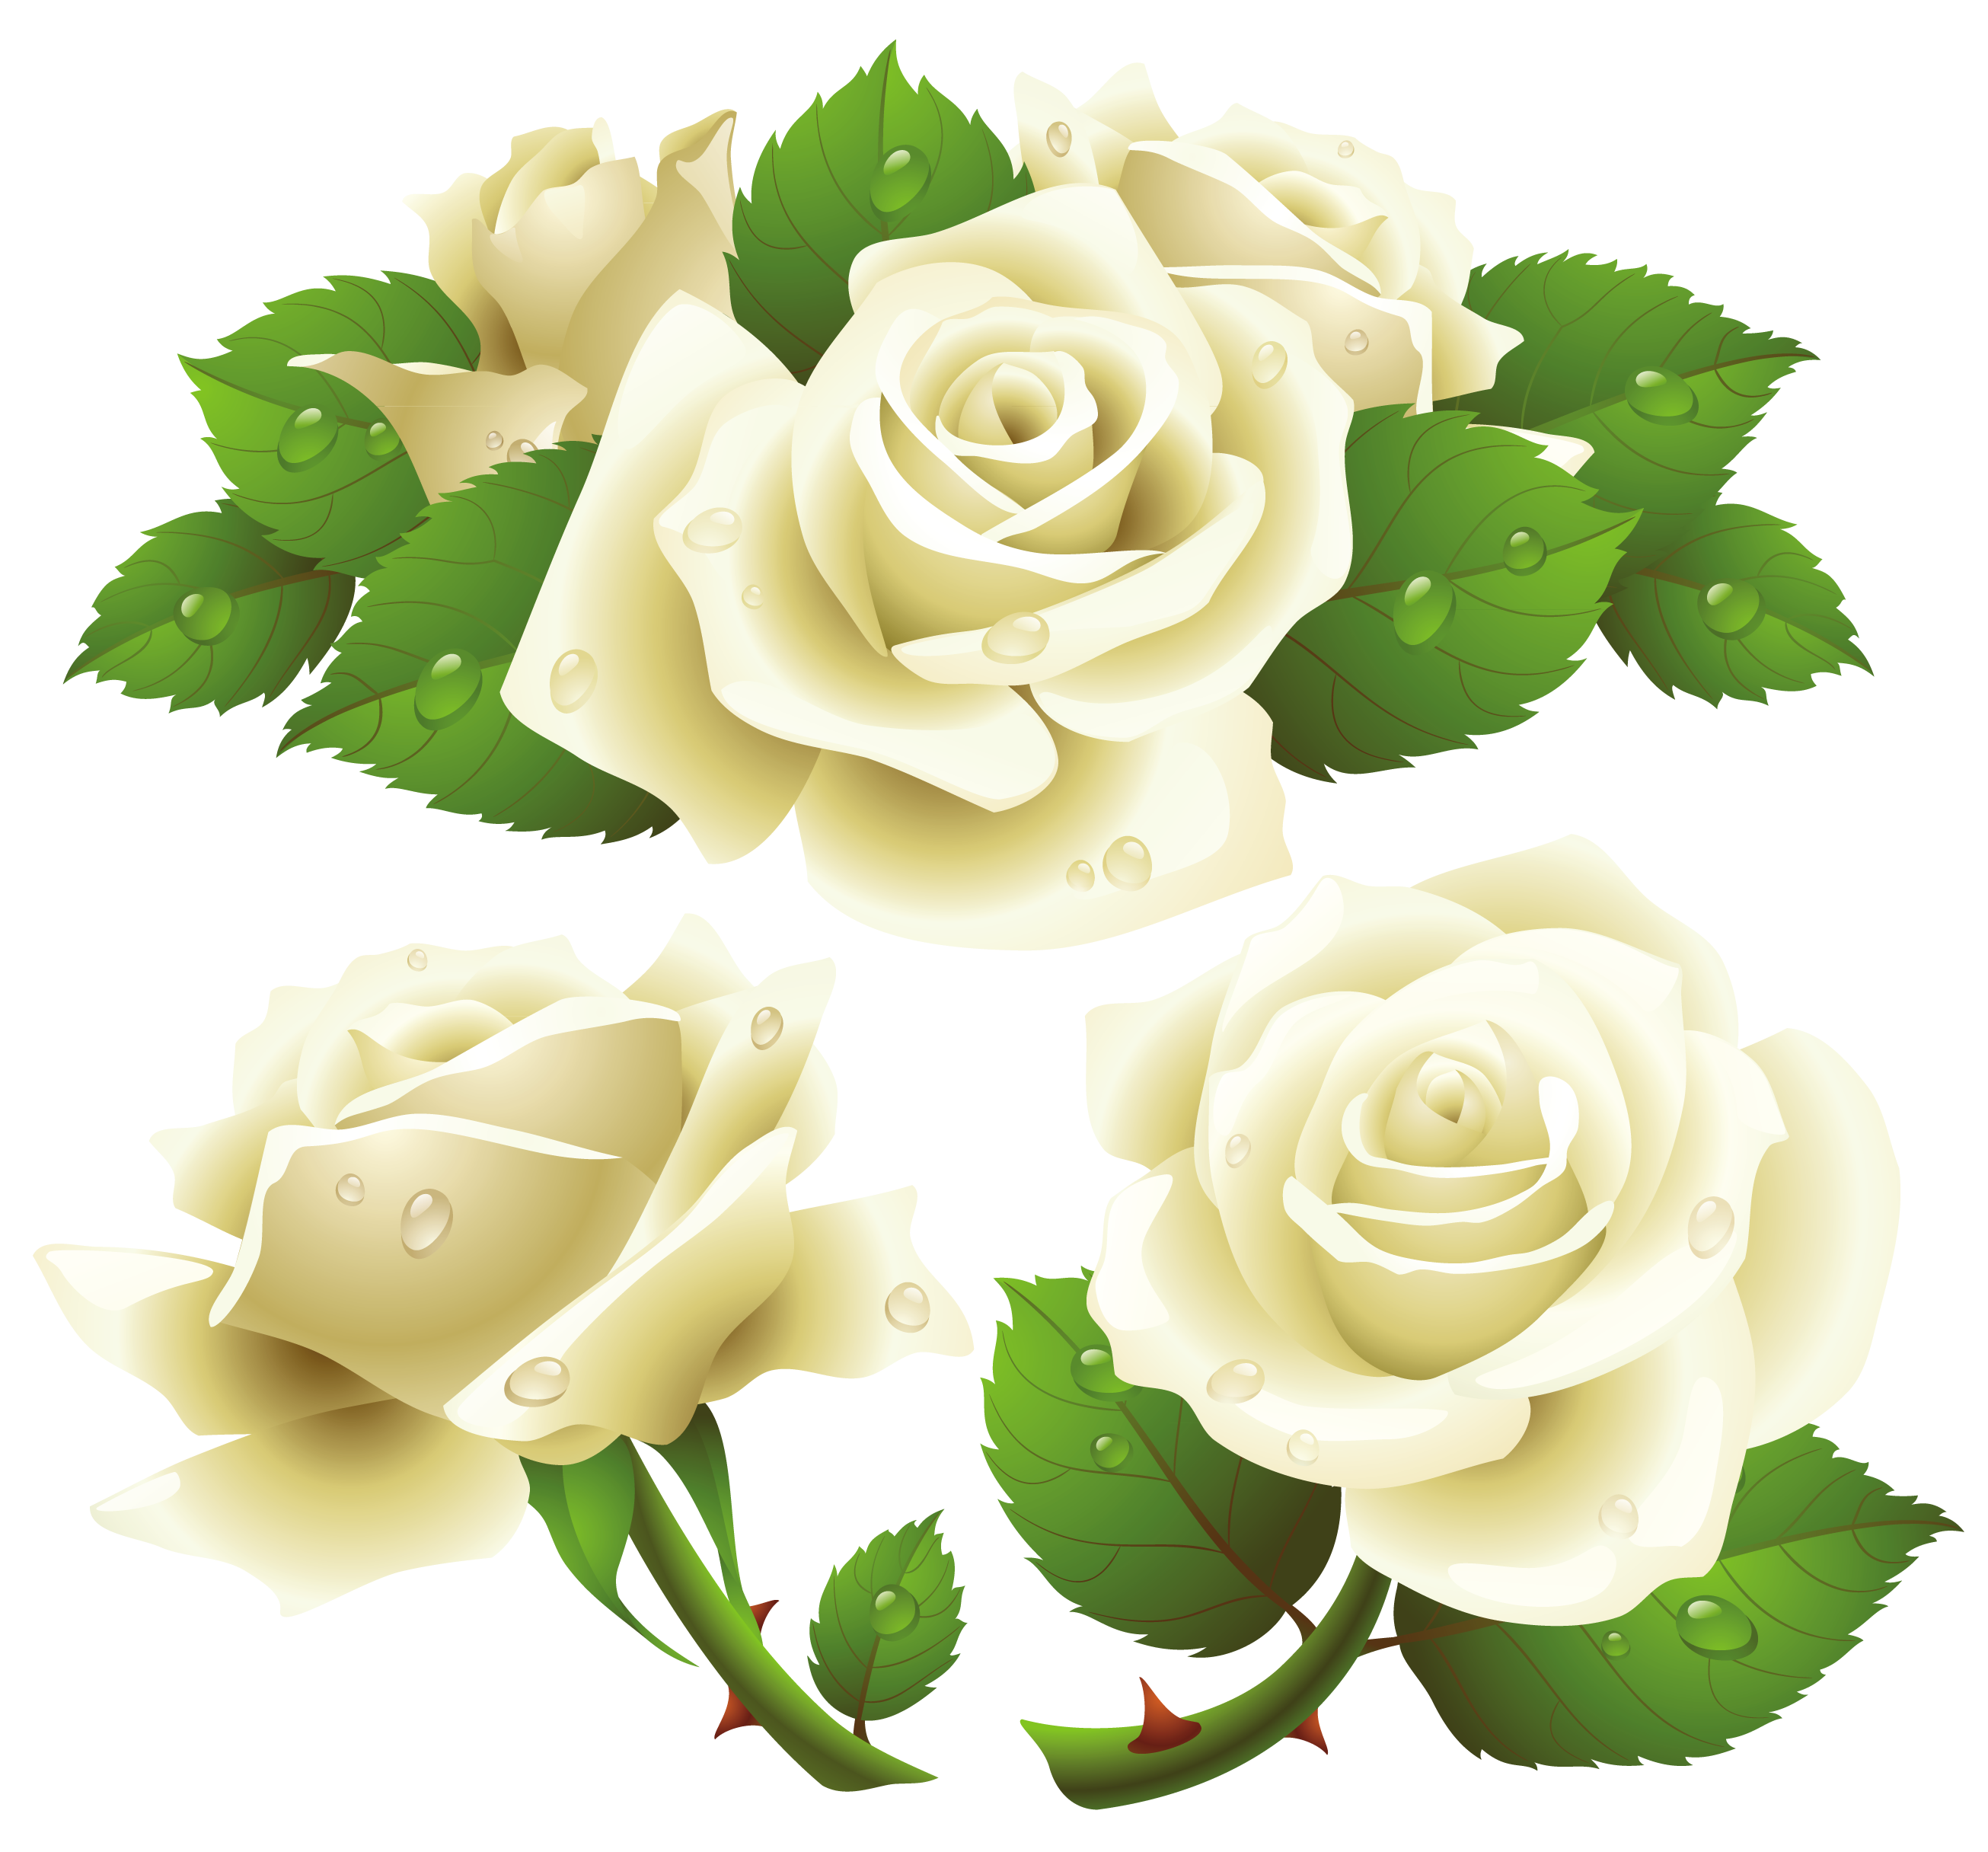 White rose png clipart graphic black and white Free White Roses Png, Download Free Clip Art, Free Clip Art ... graphic black and white